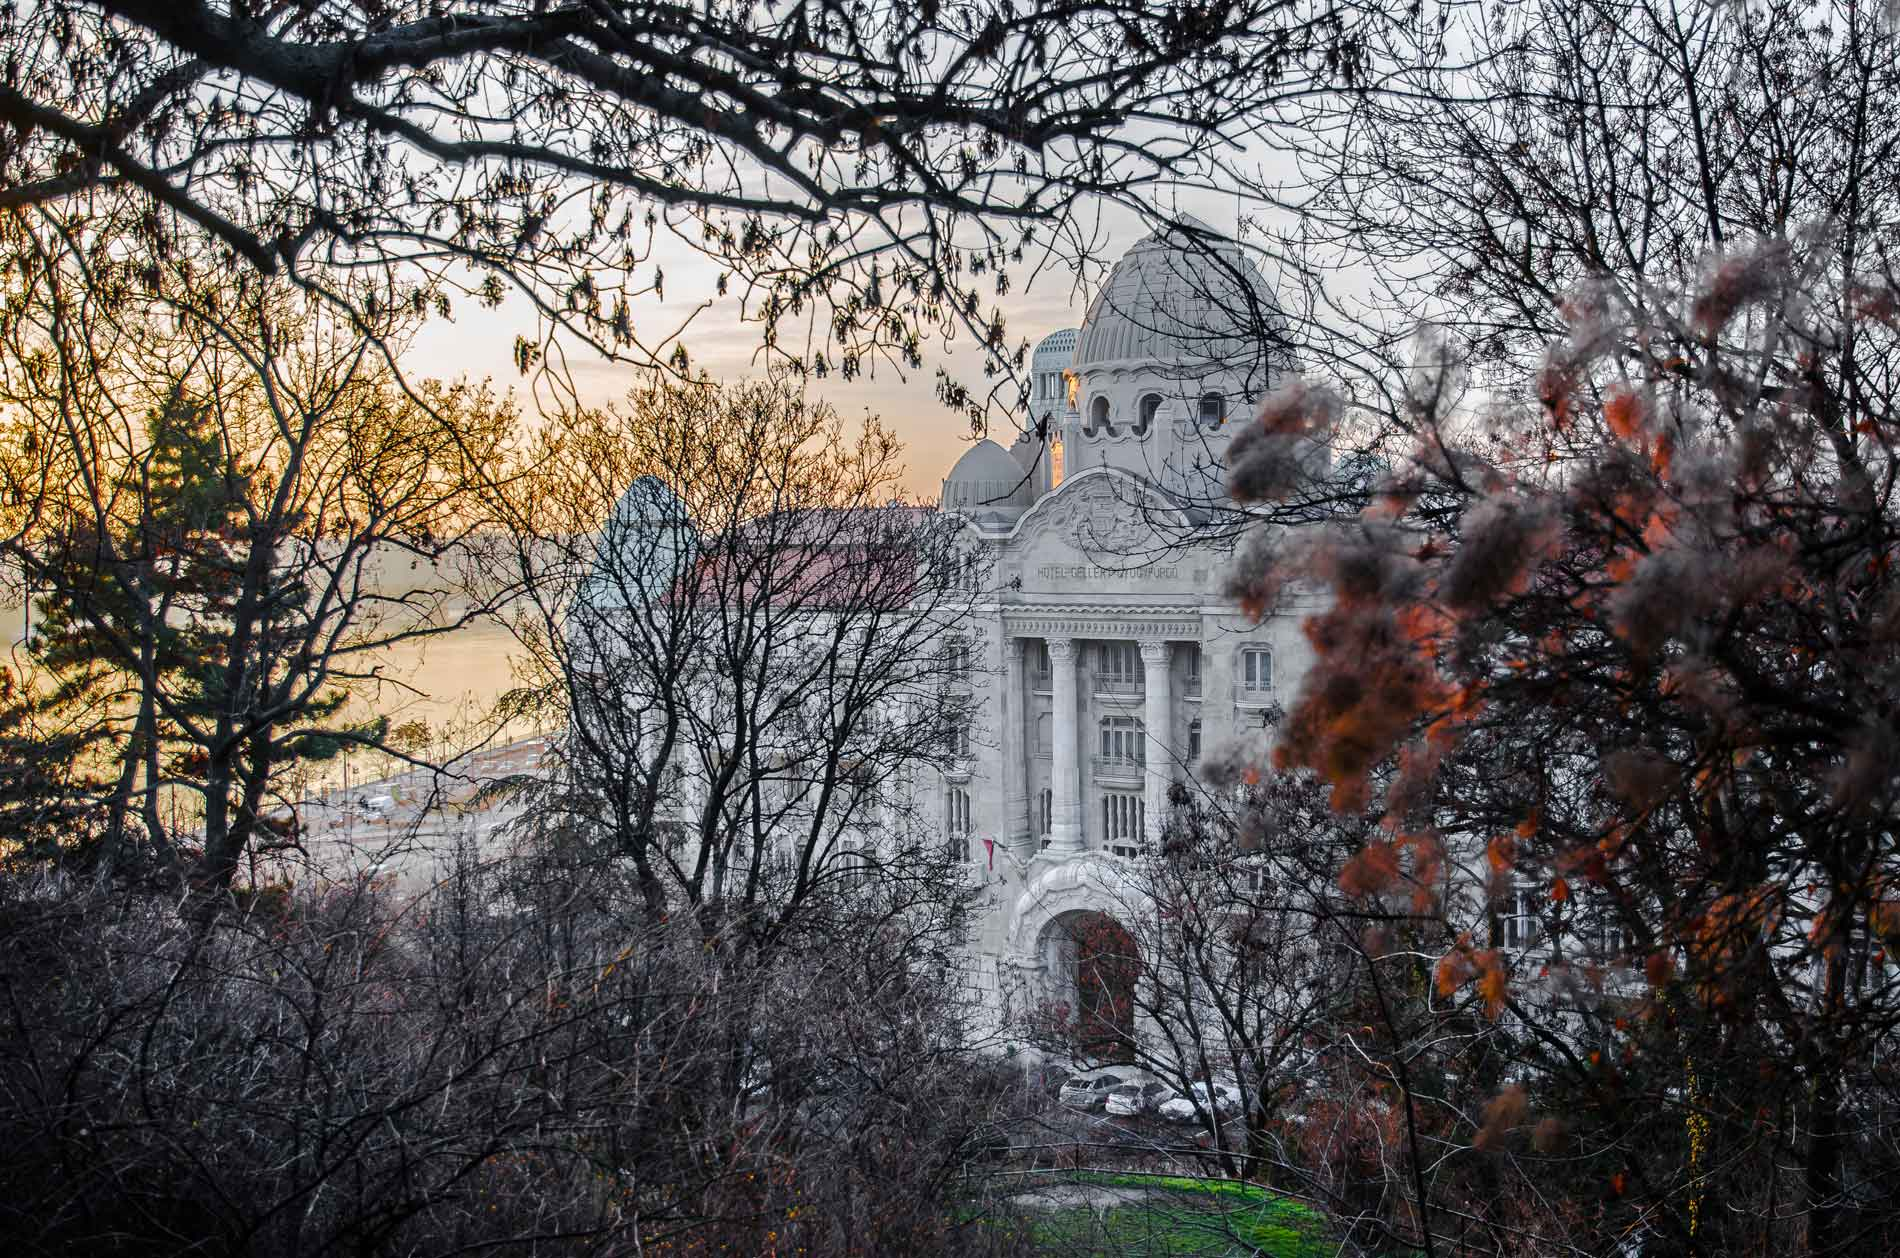 photography_atthary_budapest_architecture_15